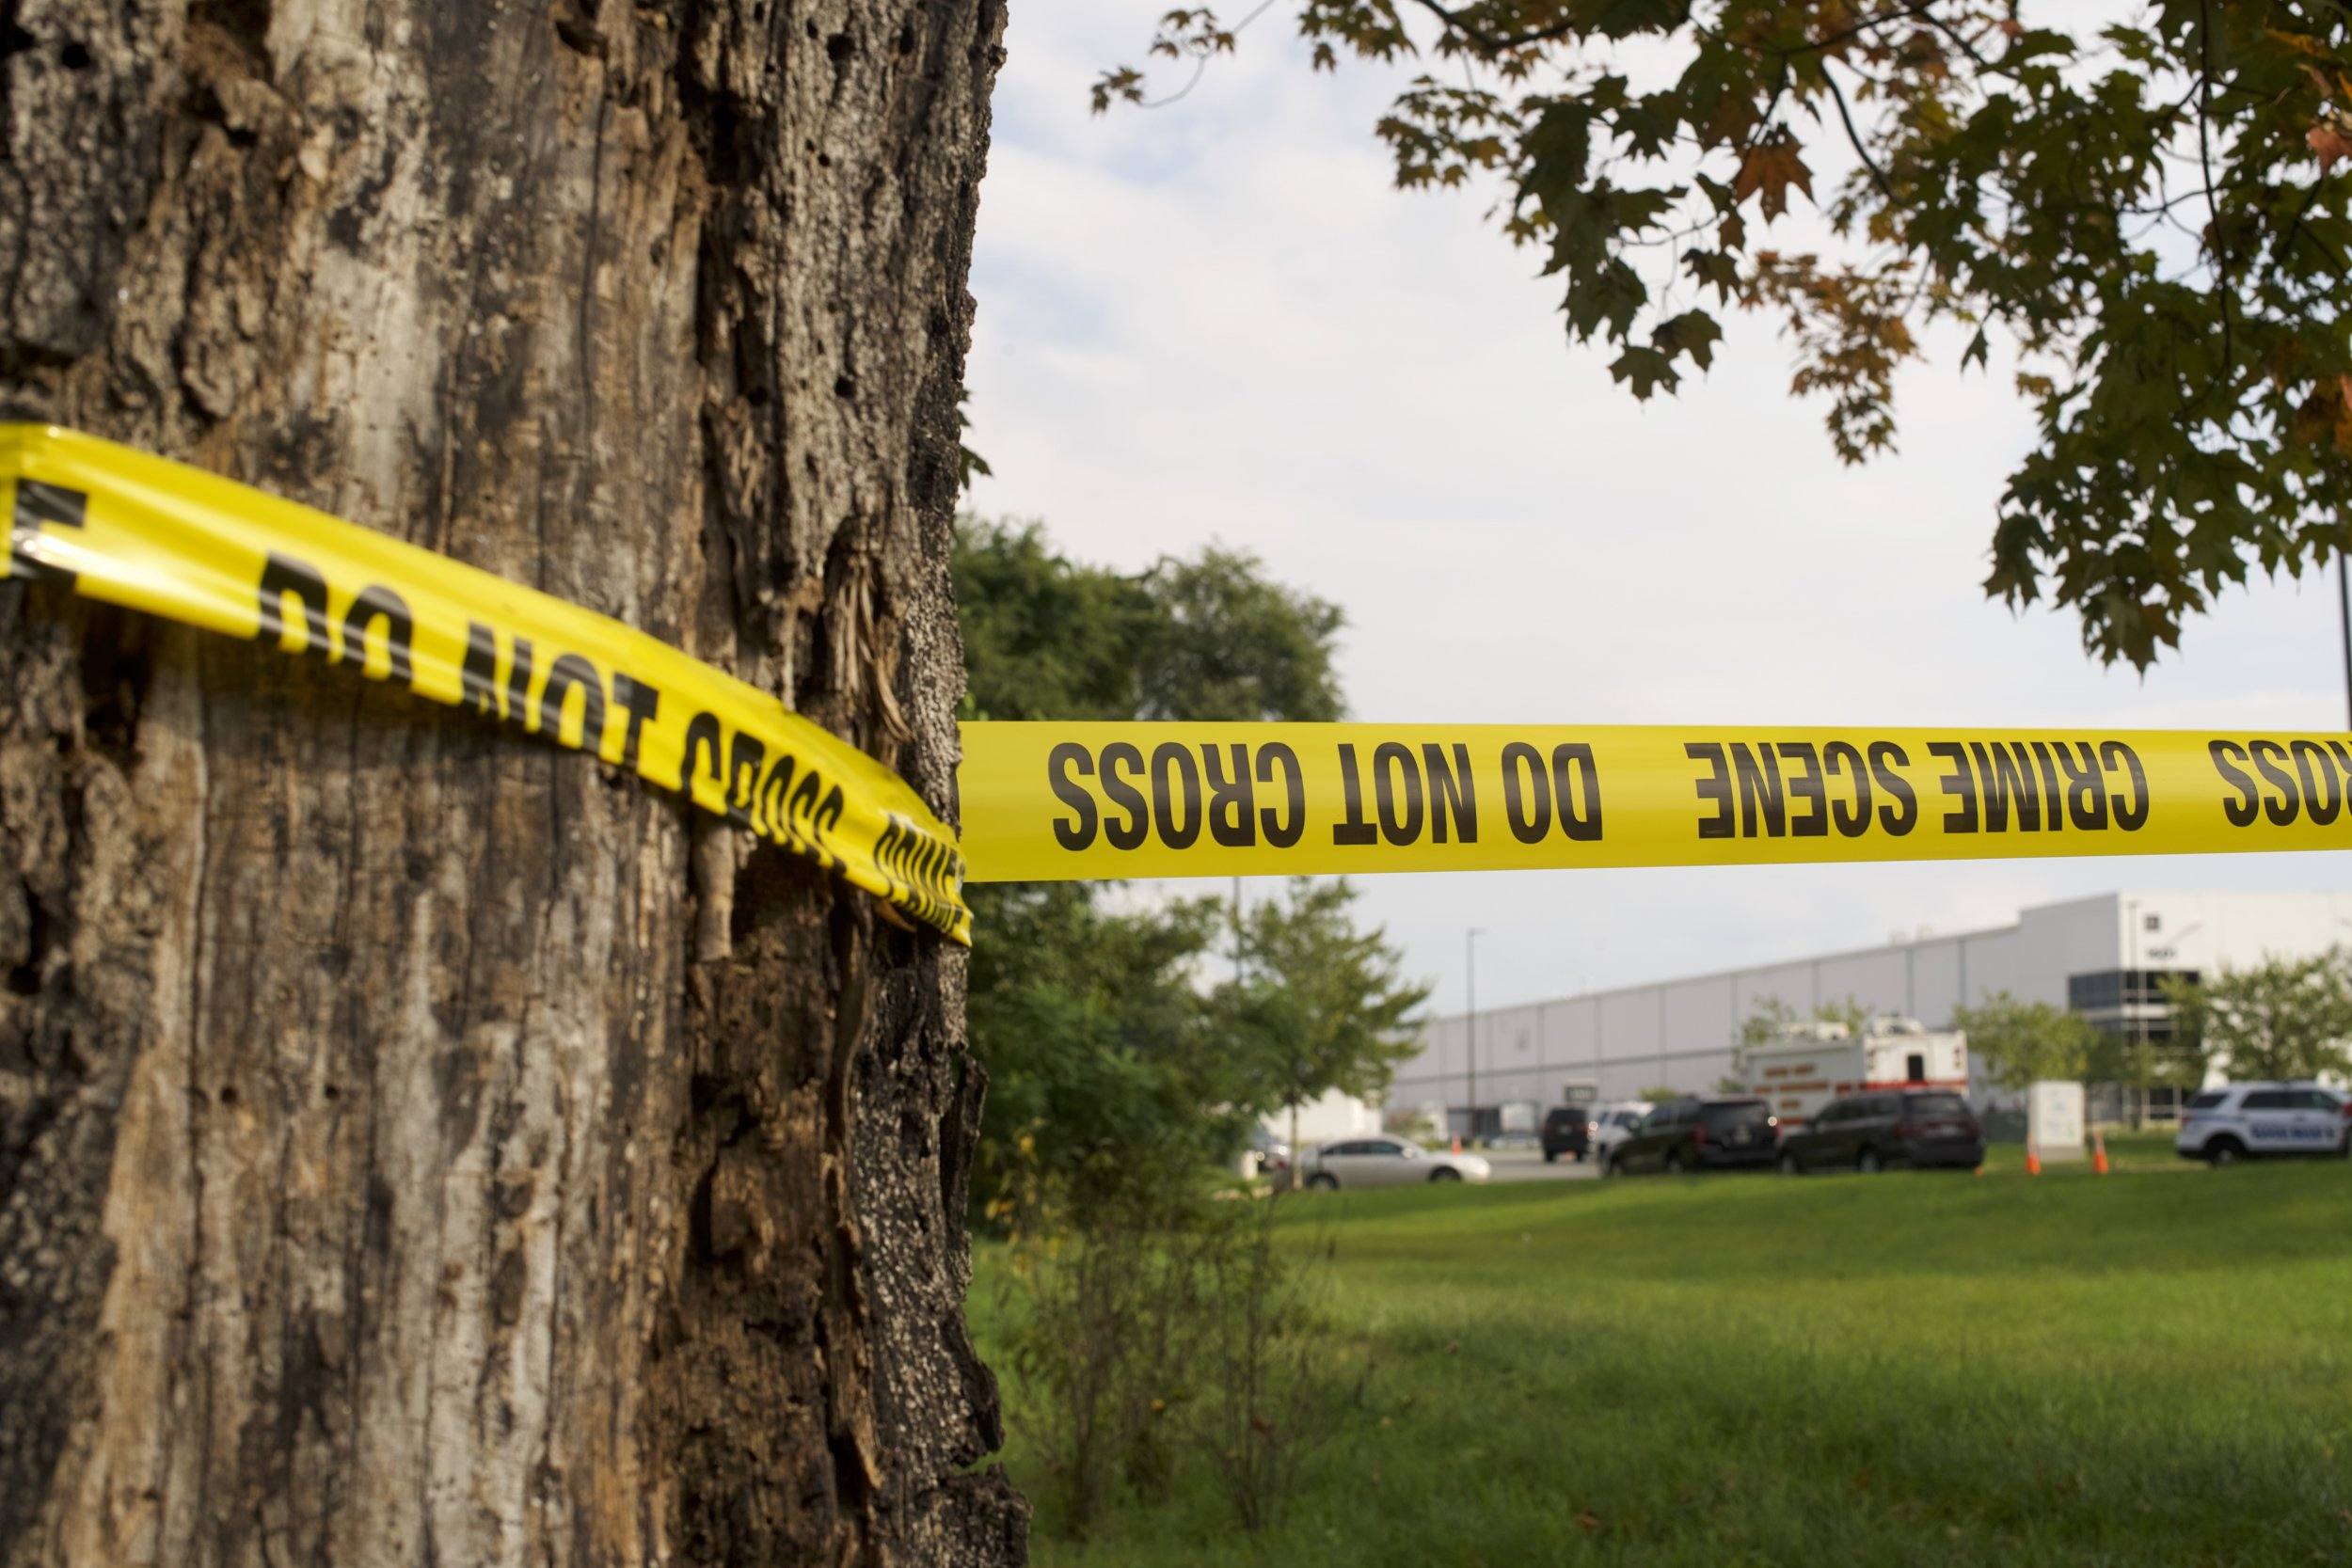 3-Year-Old Boy Shoots Sister